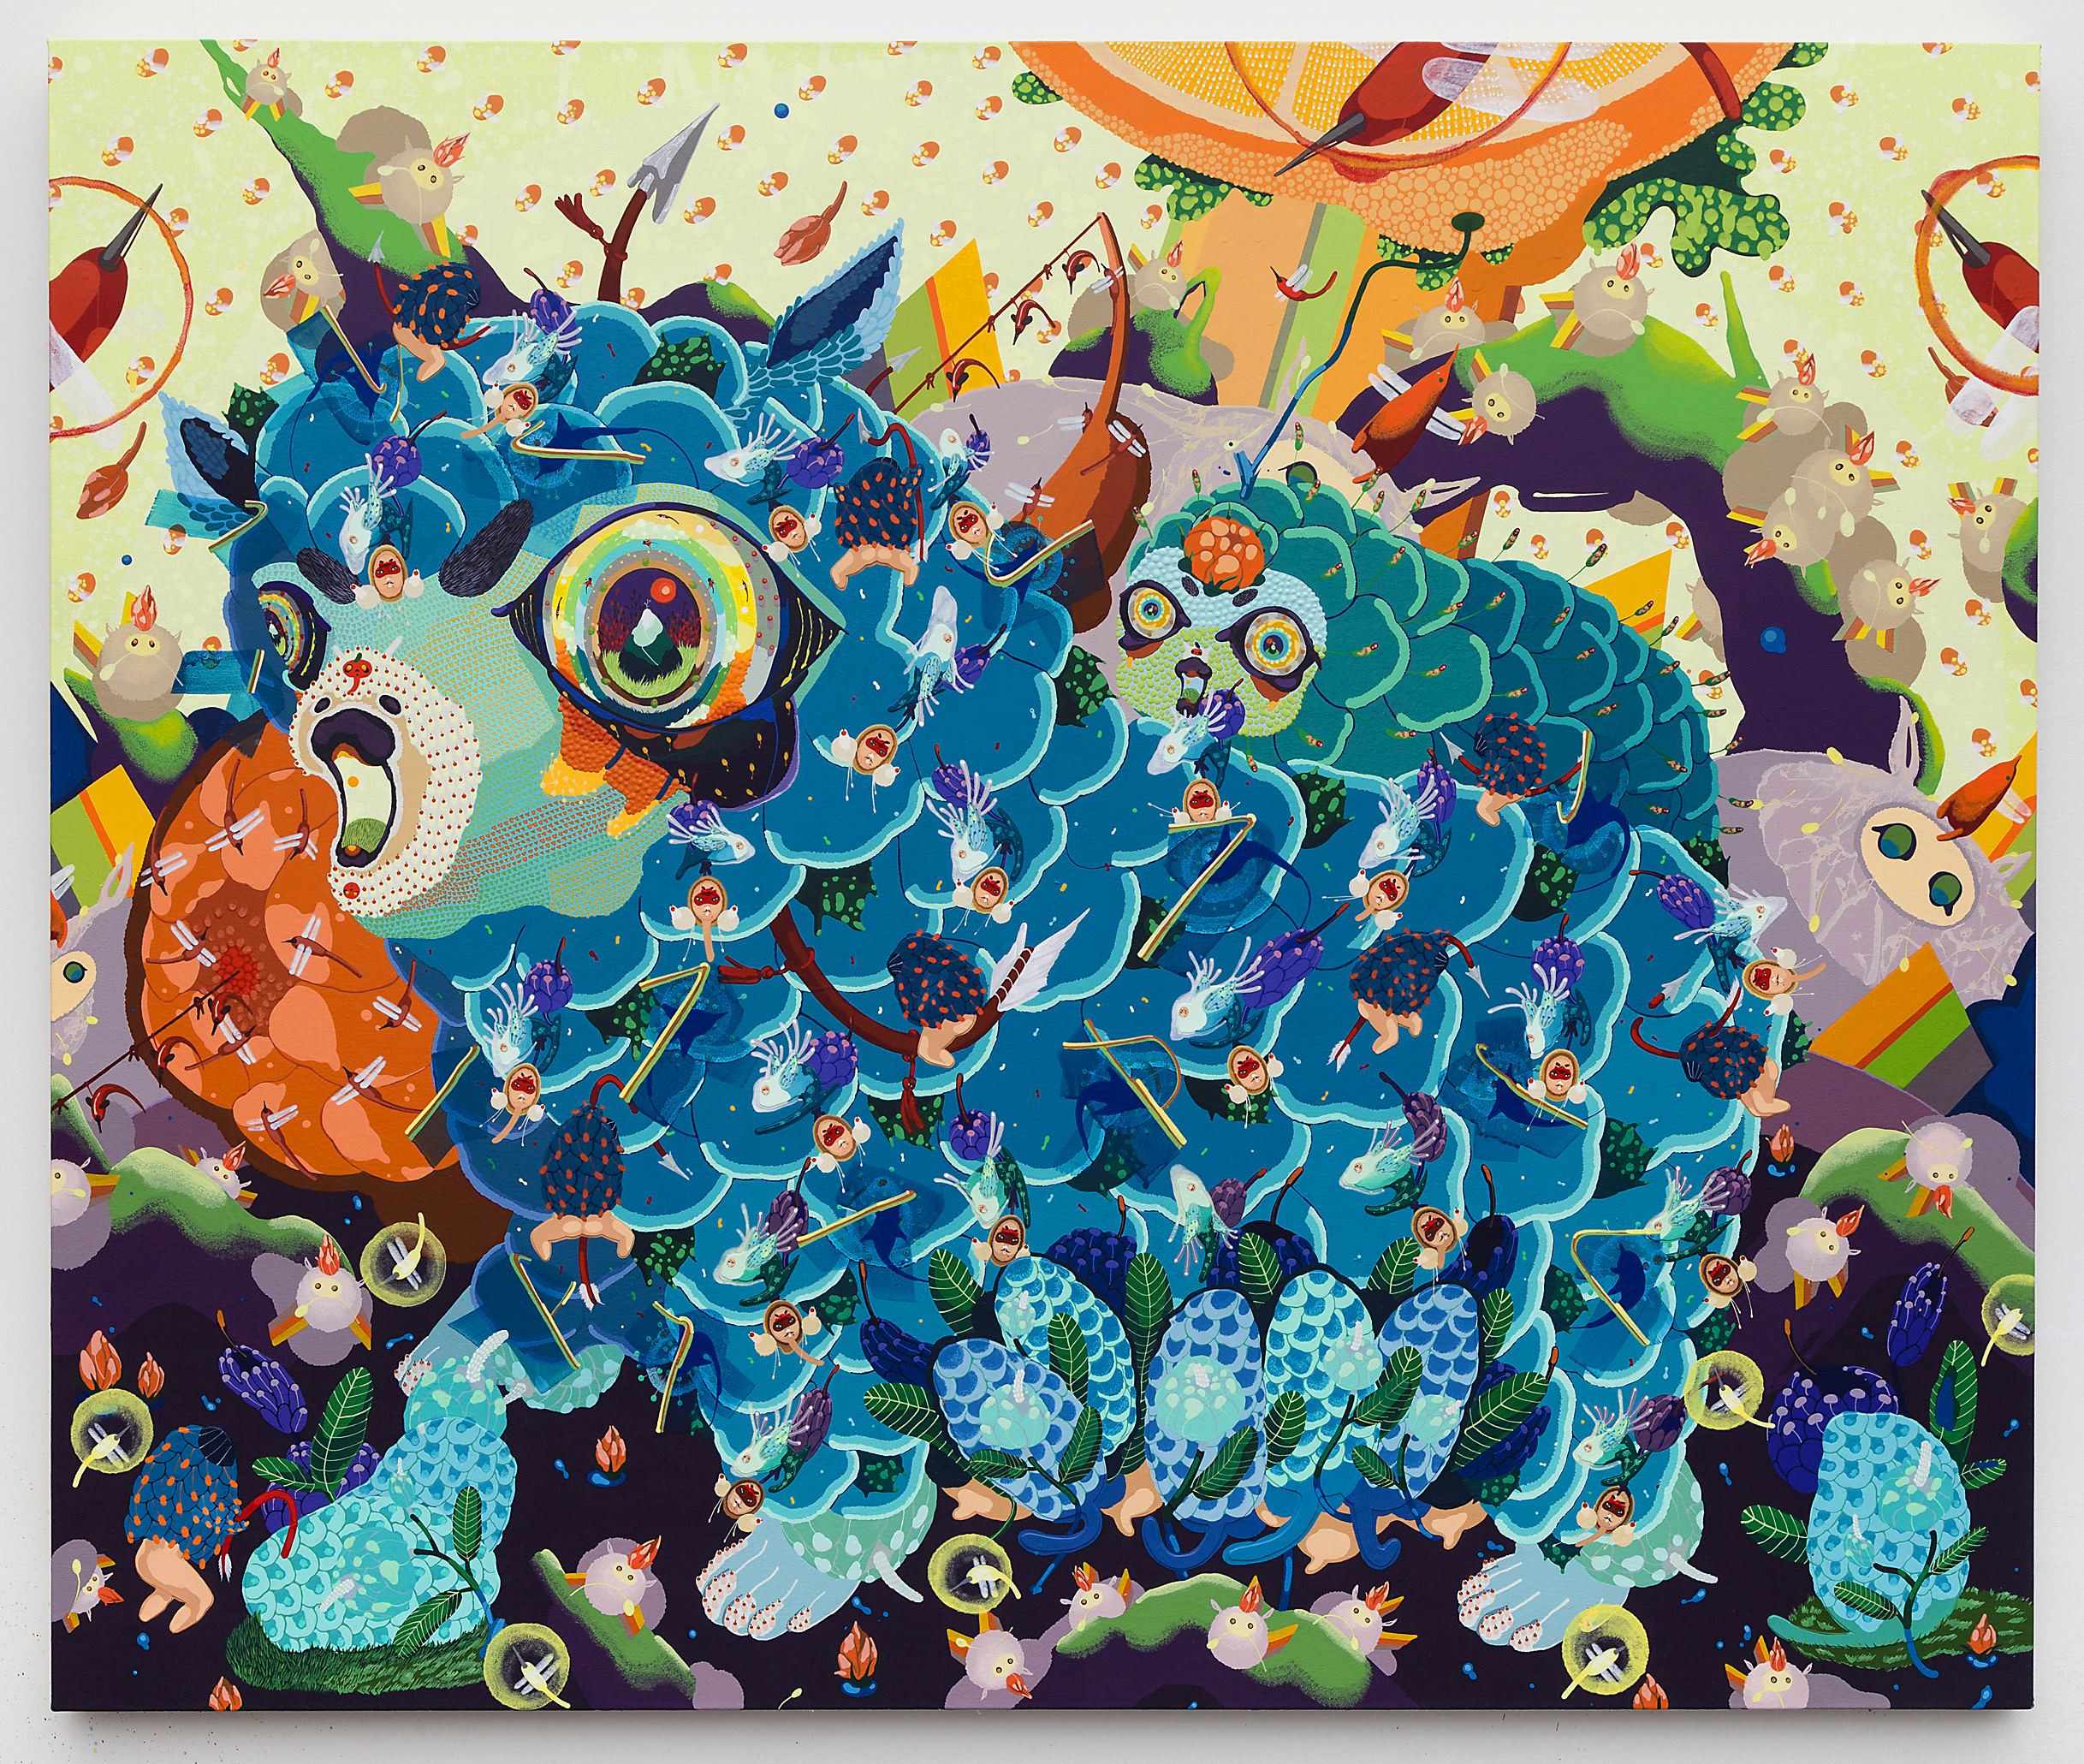 Mi Ju ,  Blue Sheep , 2015 ( Artist Website ) Acrylic on canvas, cut out paper, thread 42 x 50""